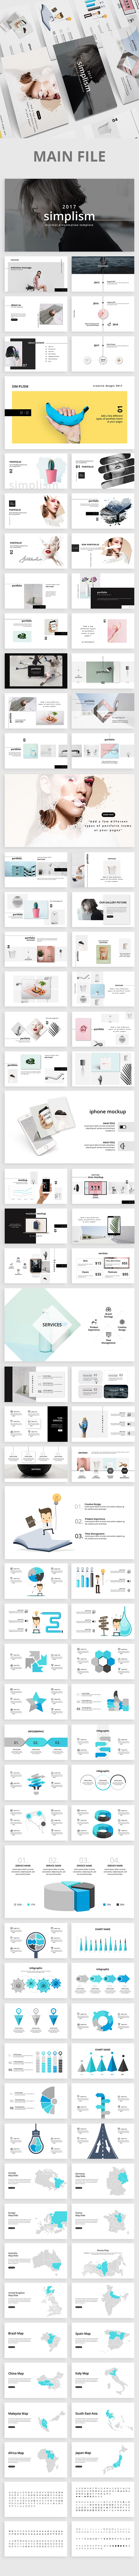 Simplism Minimal Powerpoint Template - Creative PowerPoint Templates